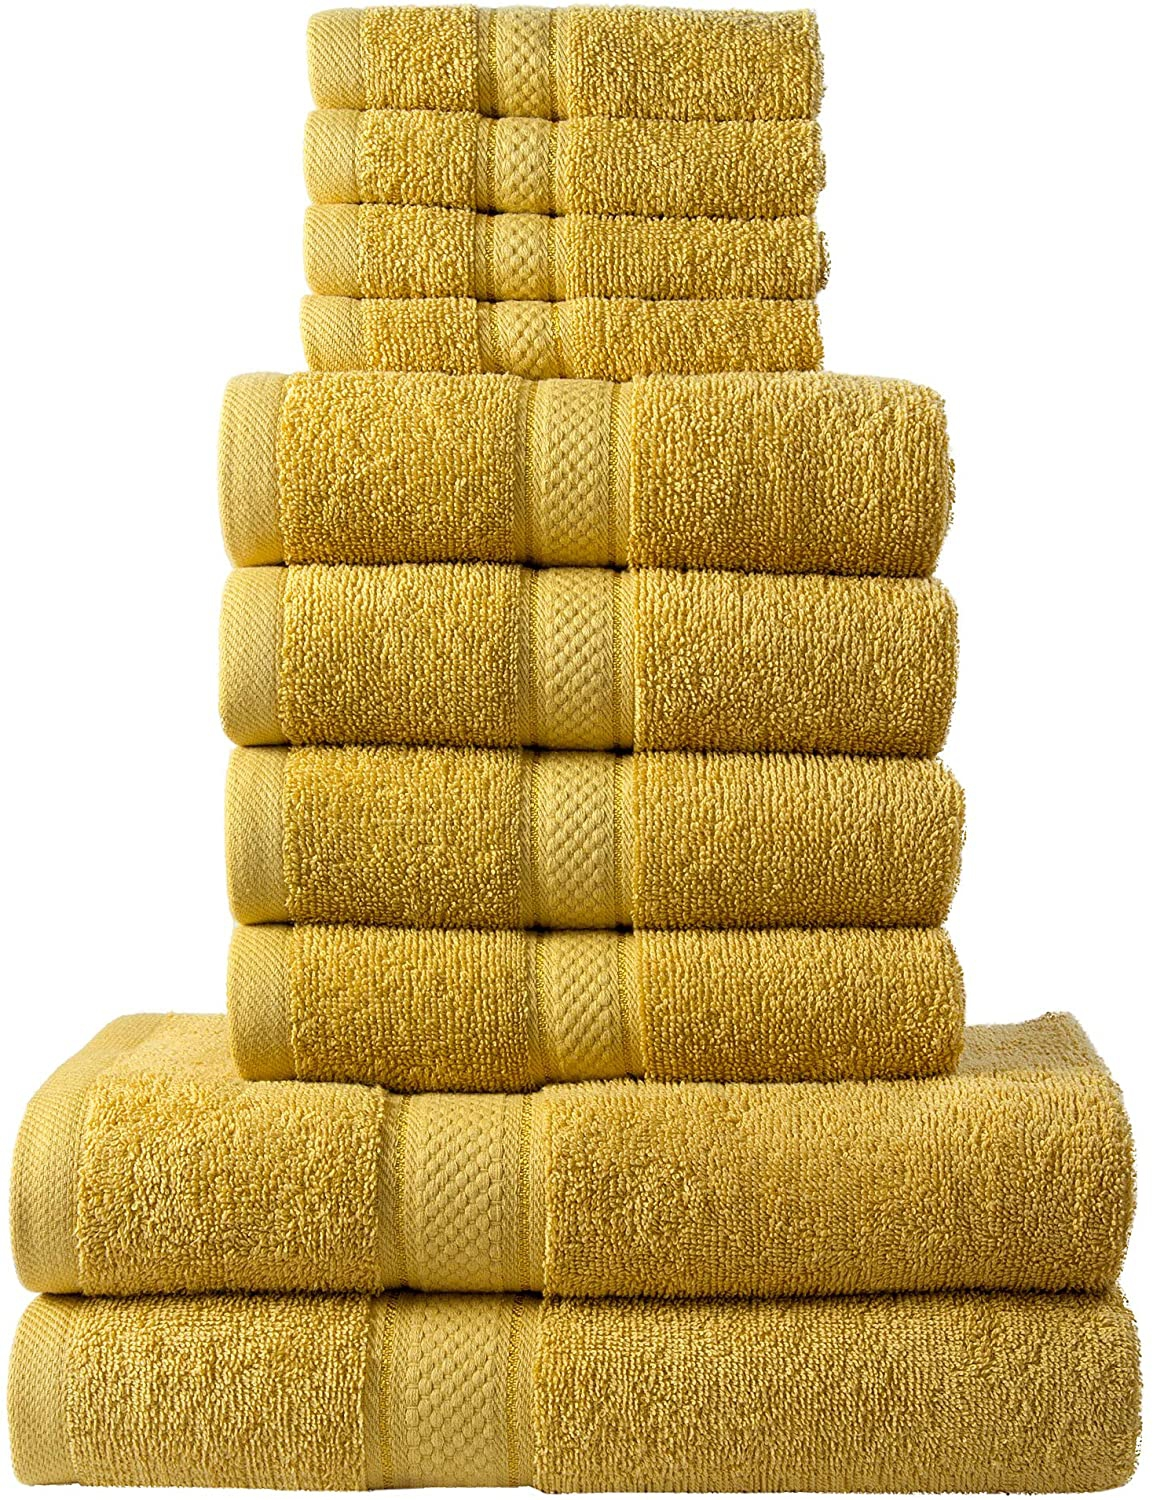 10 Pcs 100% Cotton Mustard Premium Towel Bale Set Plain